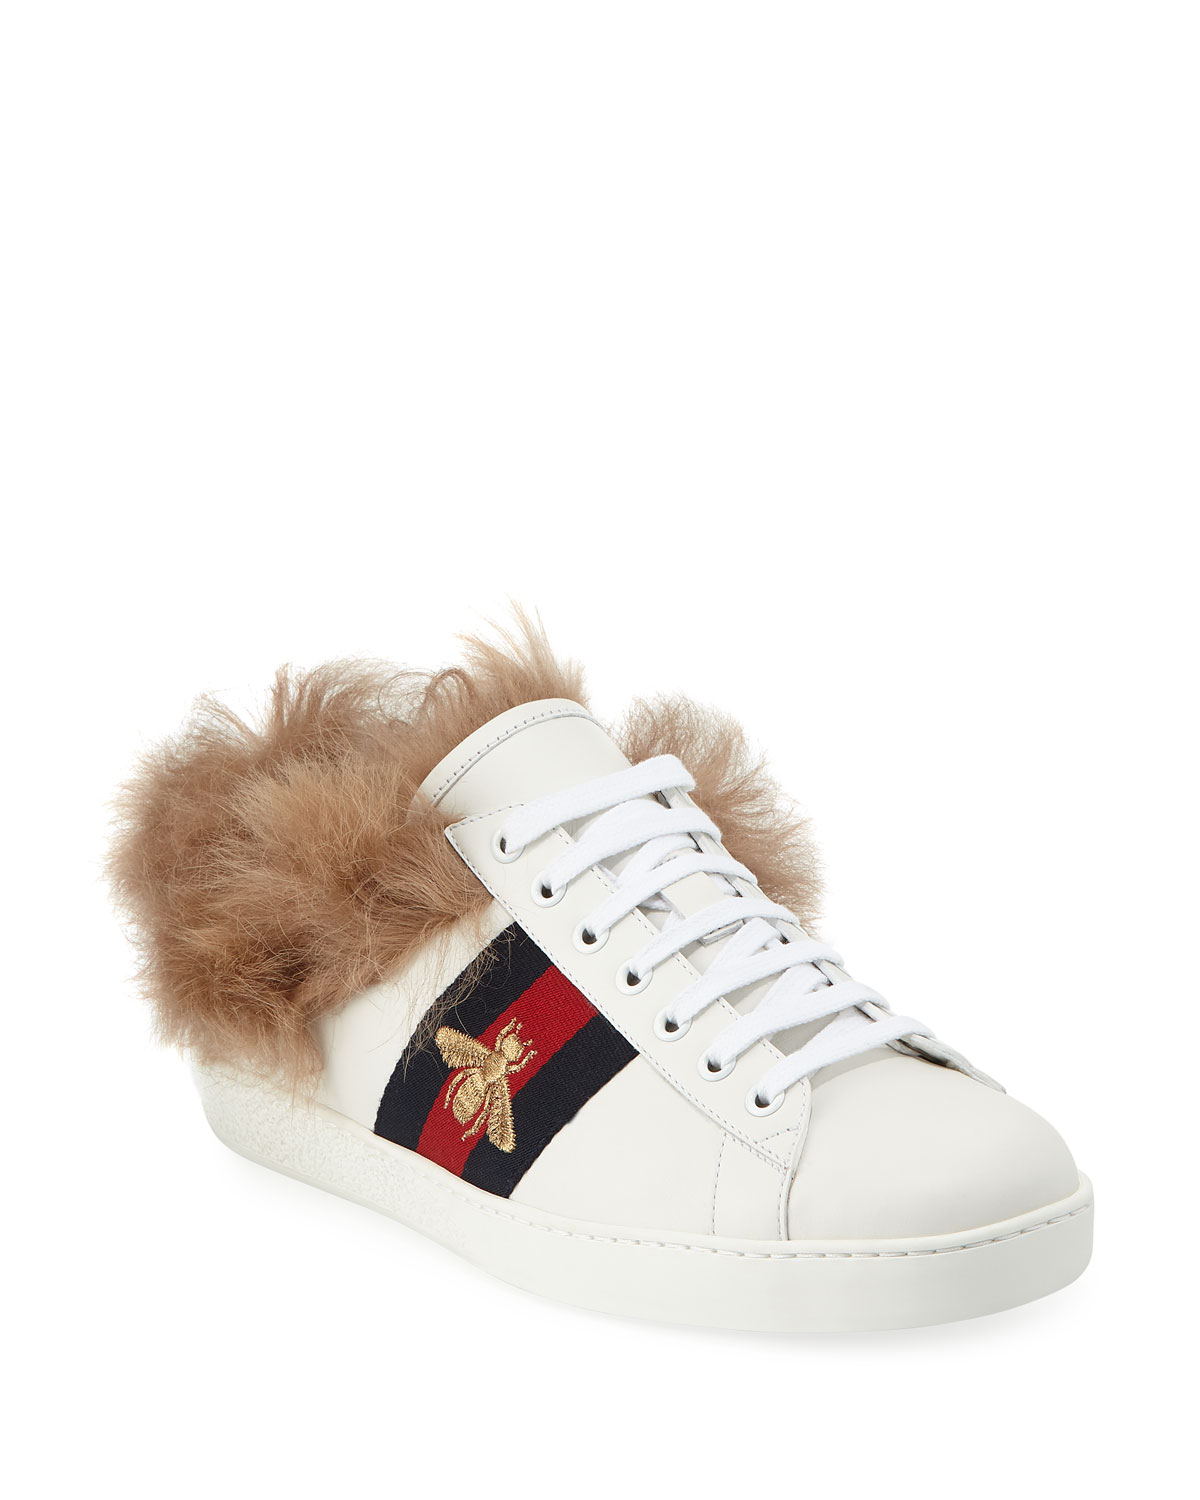 b26330192 Gucci Ace Sneakers with Fur | Neiman Marcus